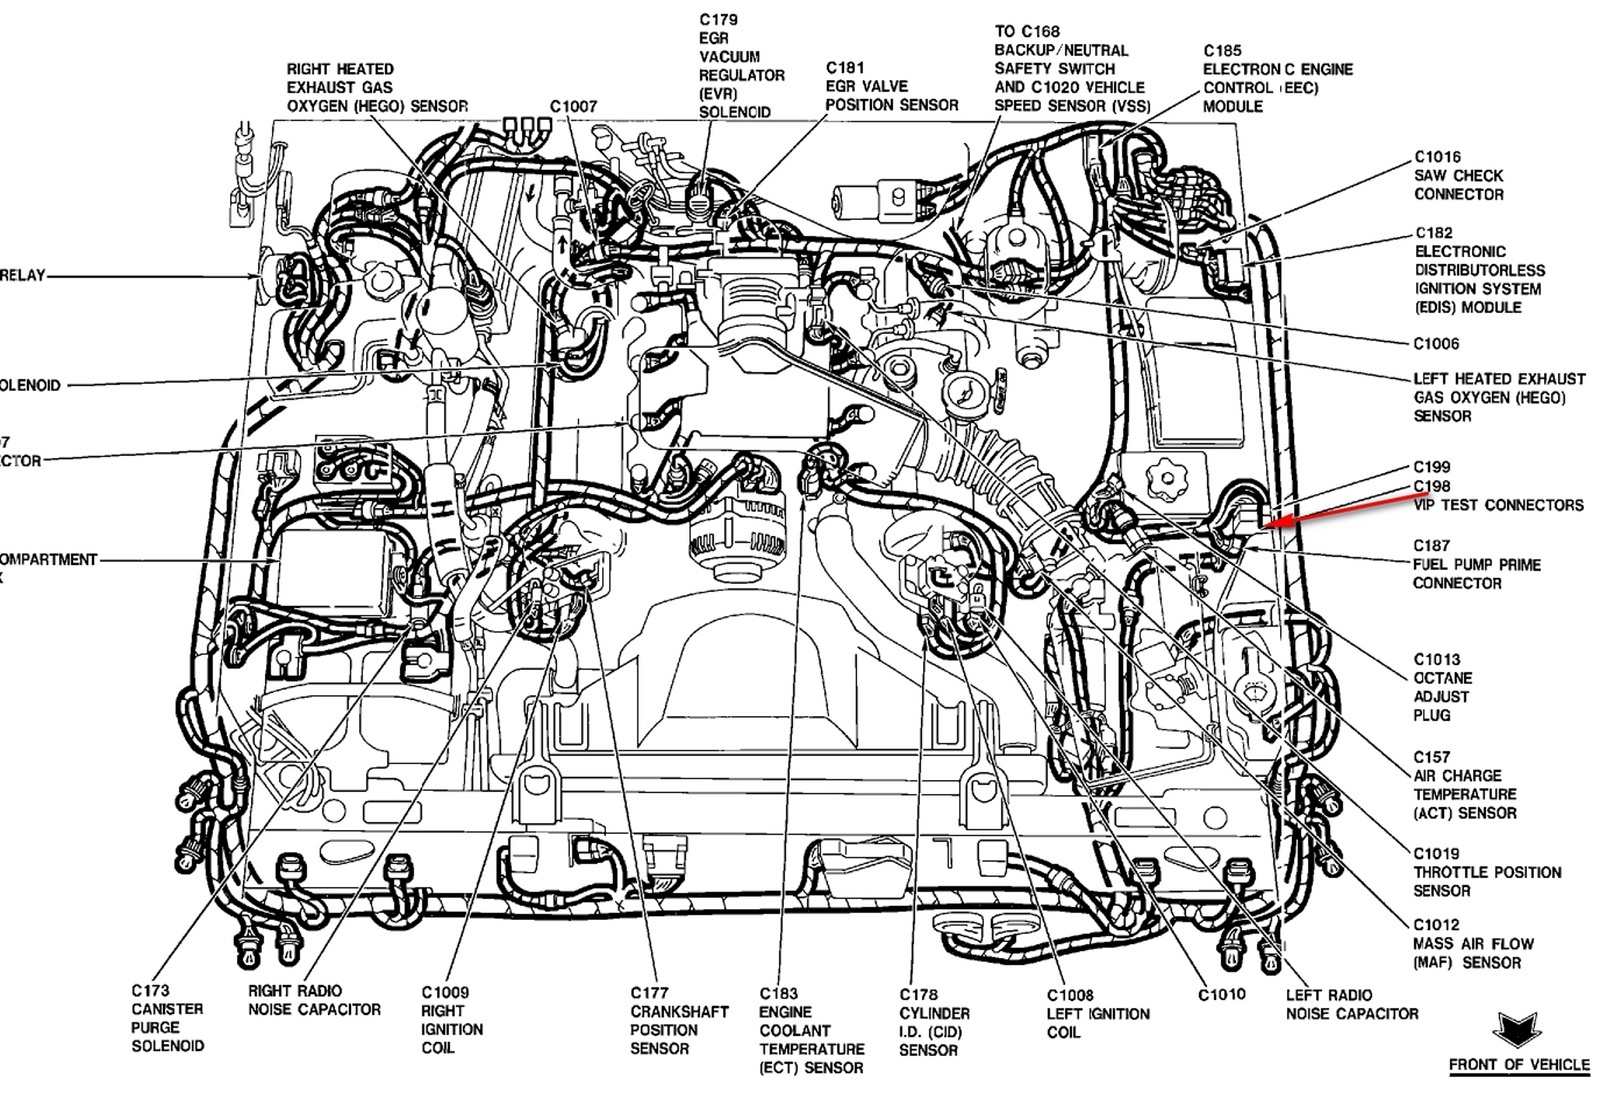 hight resolution of lincoln continental engine diagram wiring diagram blog rh 46 fuerstliche weine de 1996 lincoln town car wiring diagram 2002 lincoln town car engine diagrams